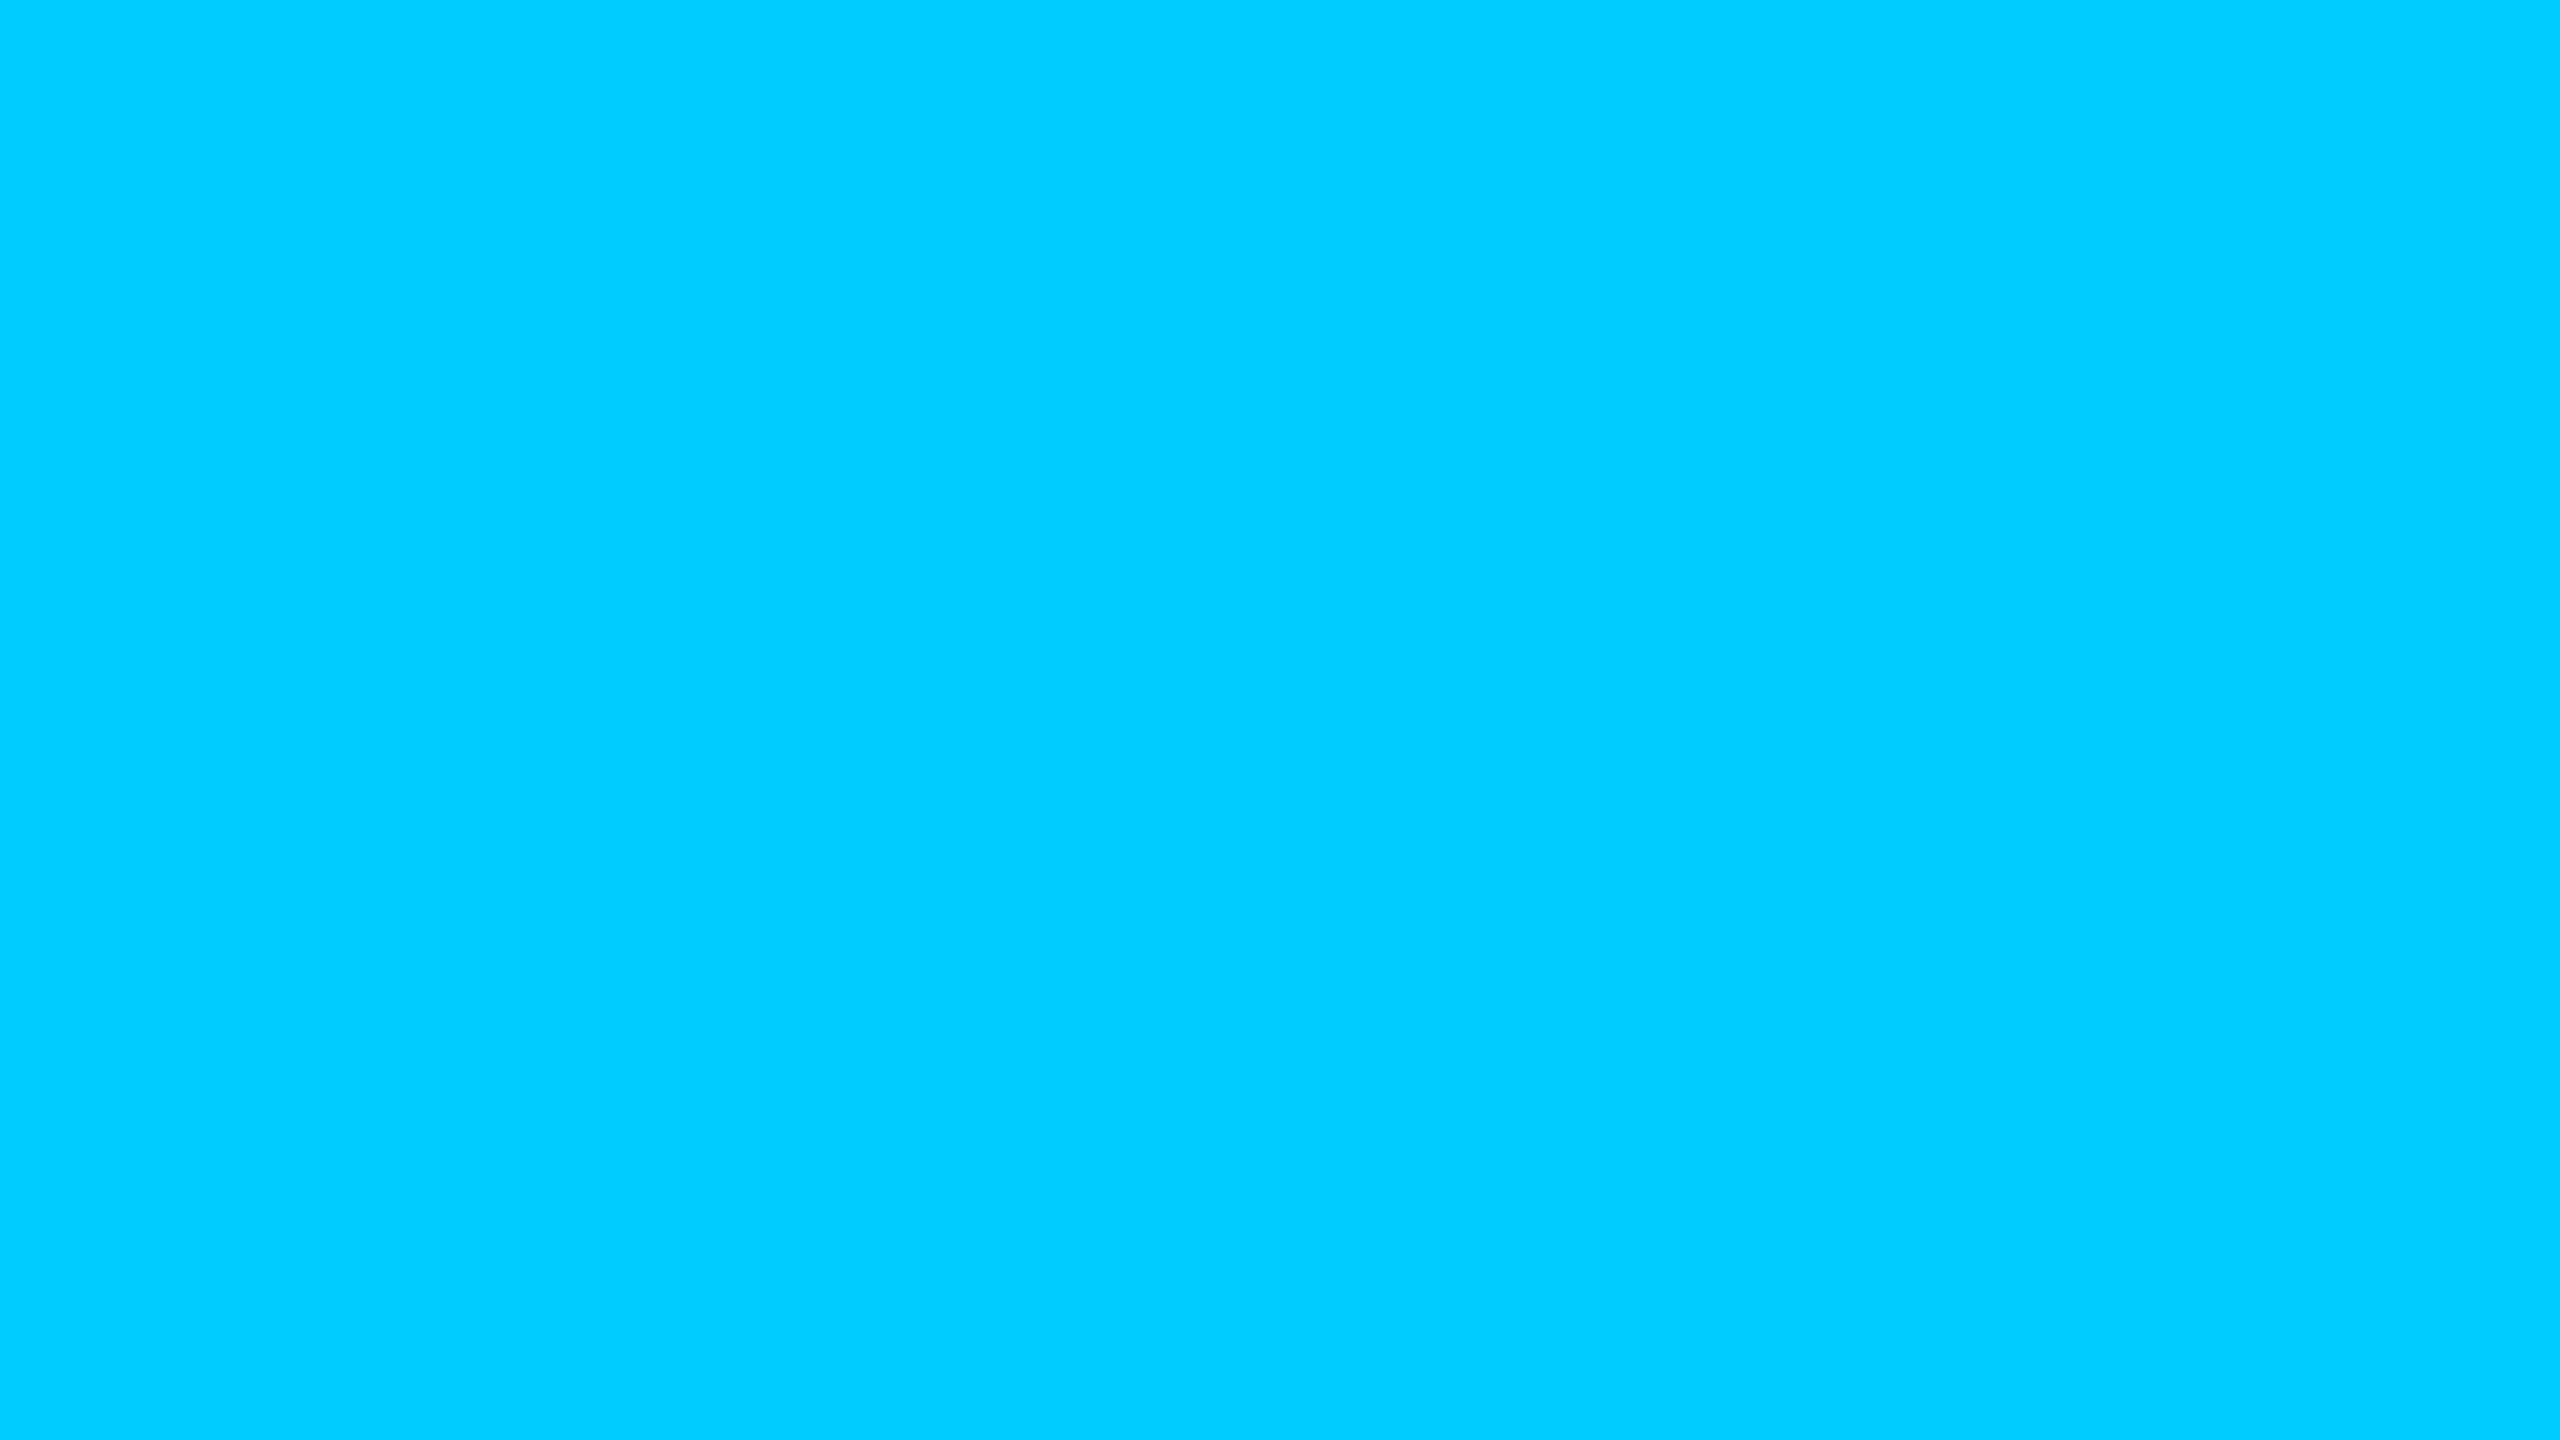 2560x1440 Vivid Sky Blue Solid Color Background